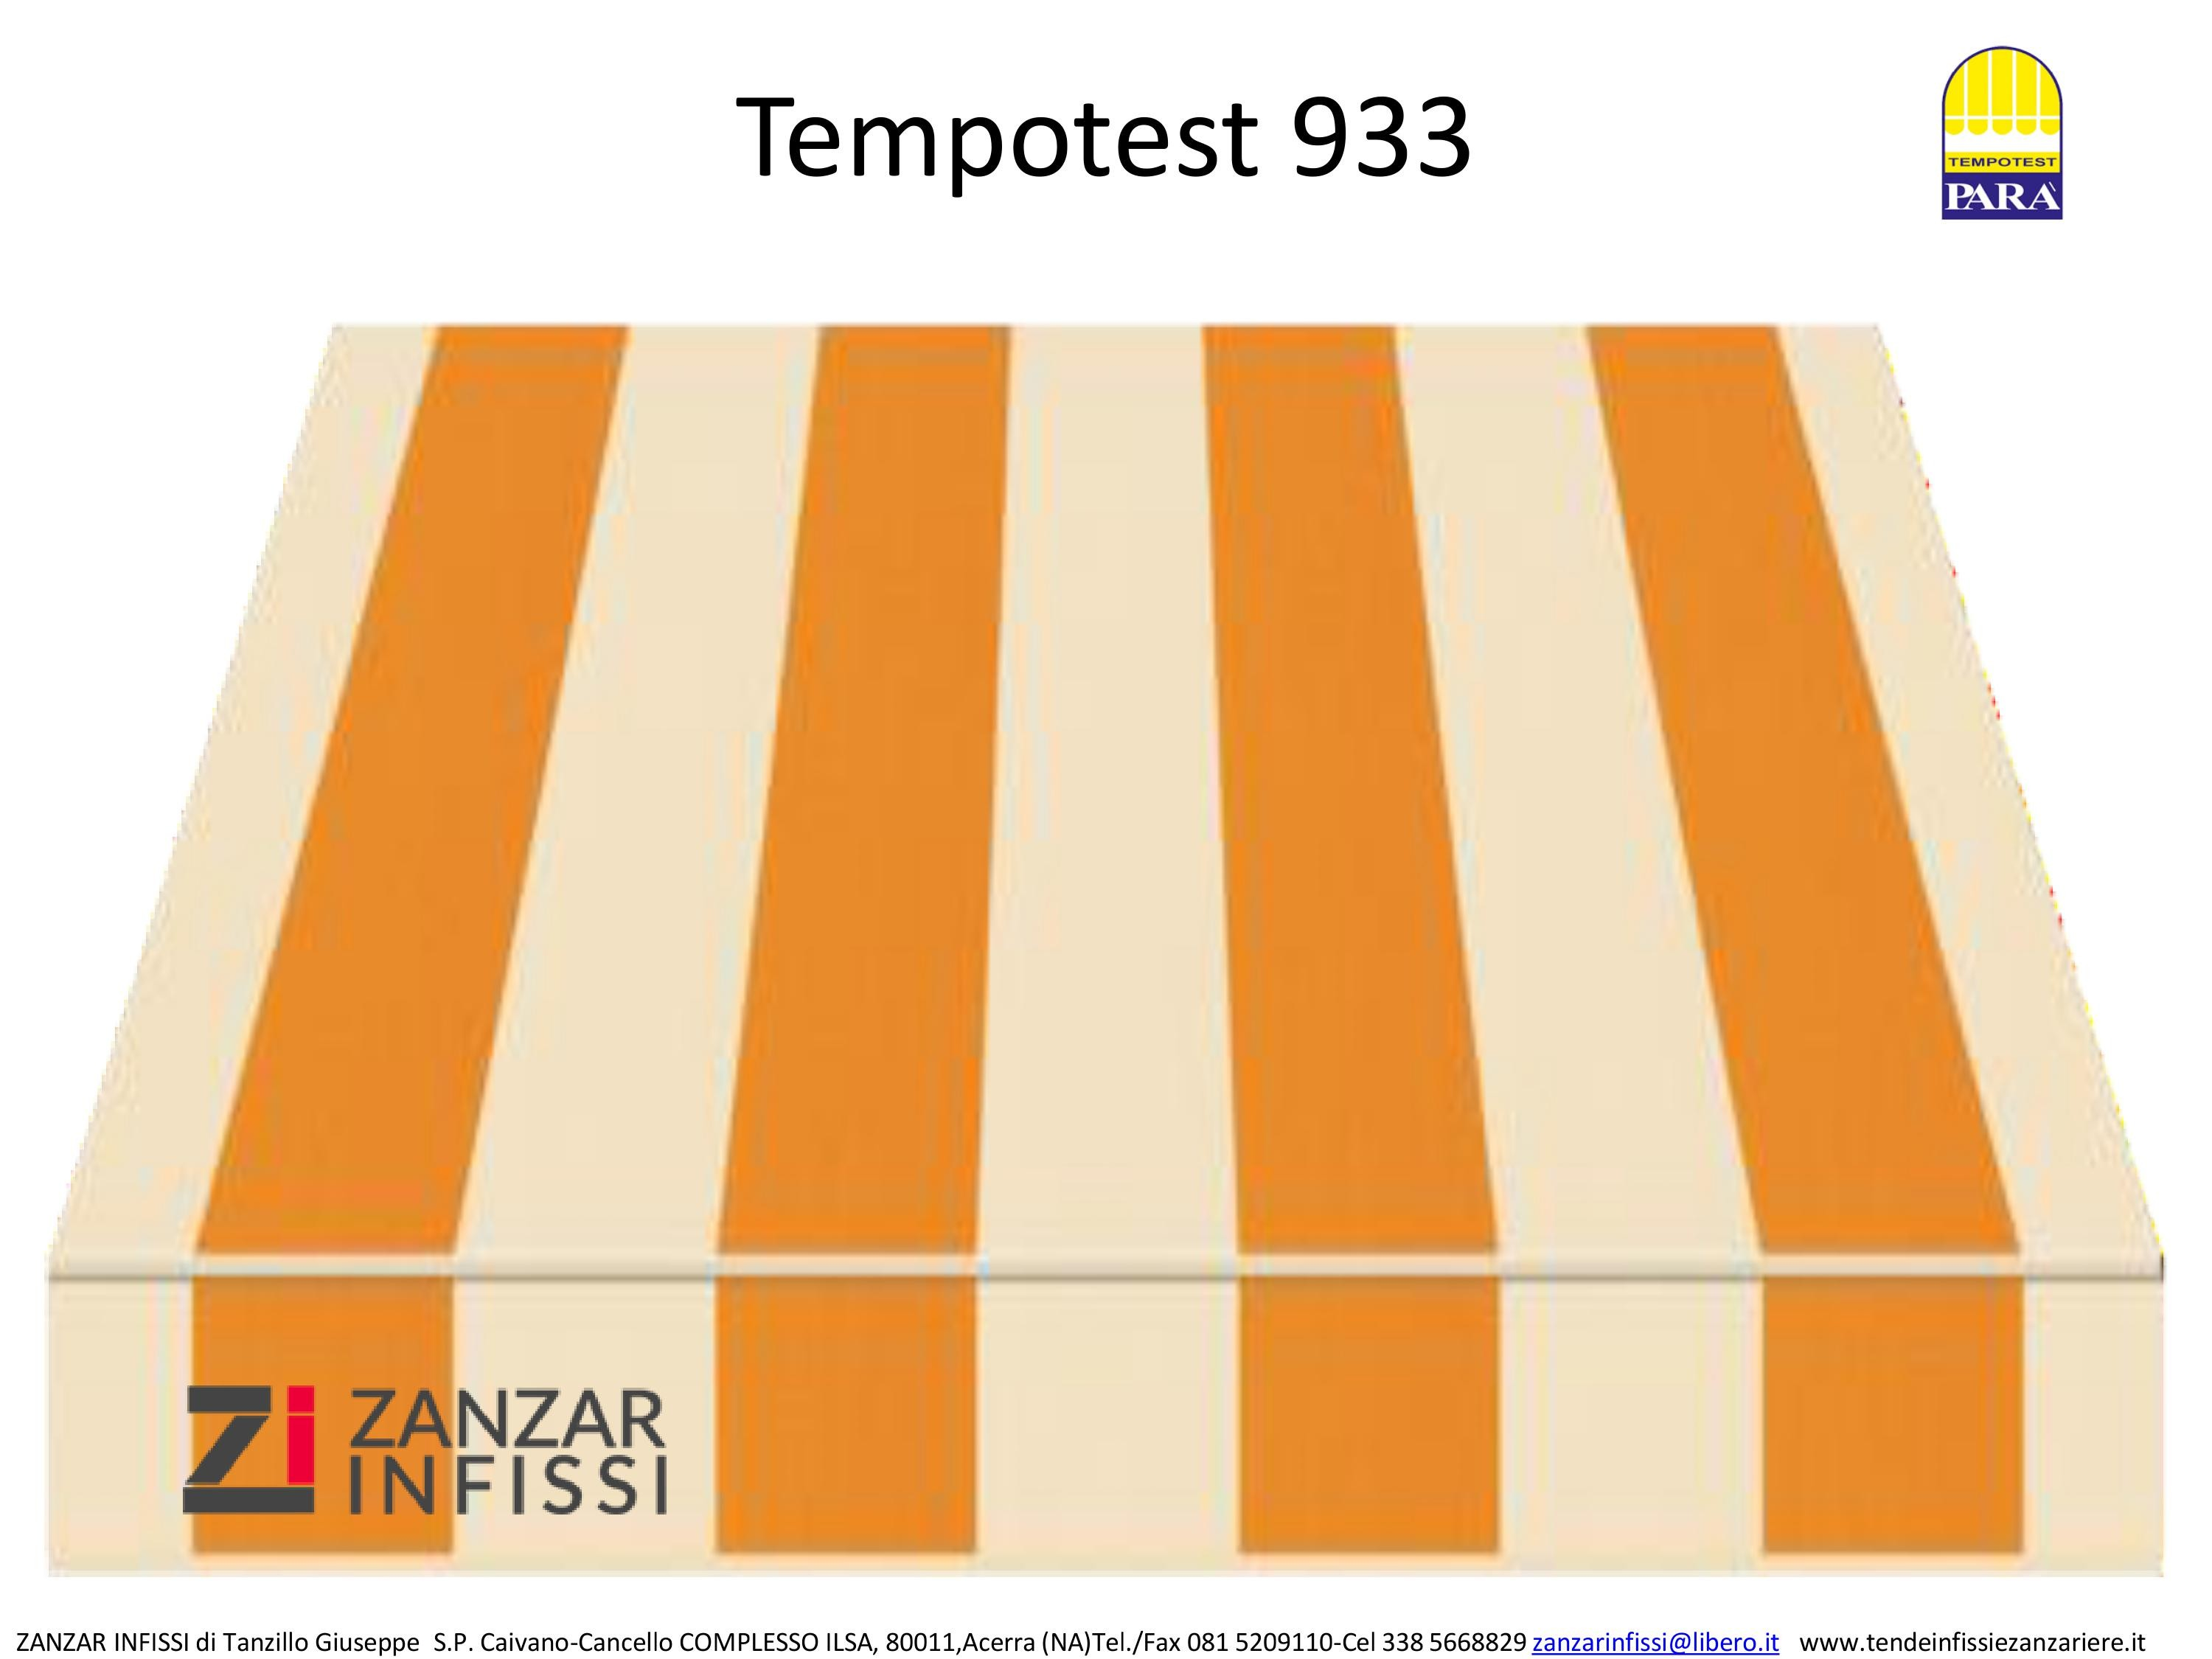 Tempotest 933